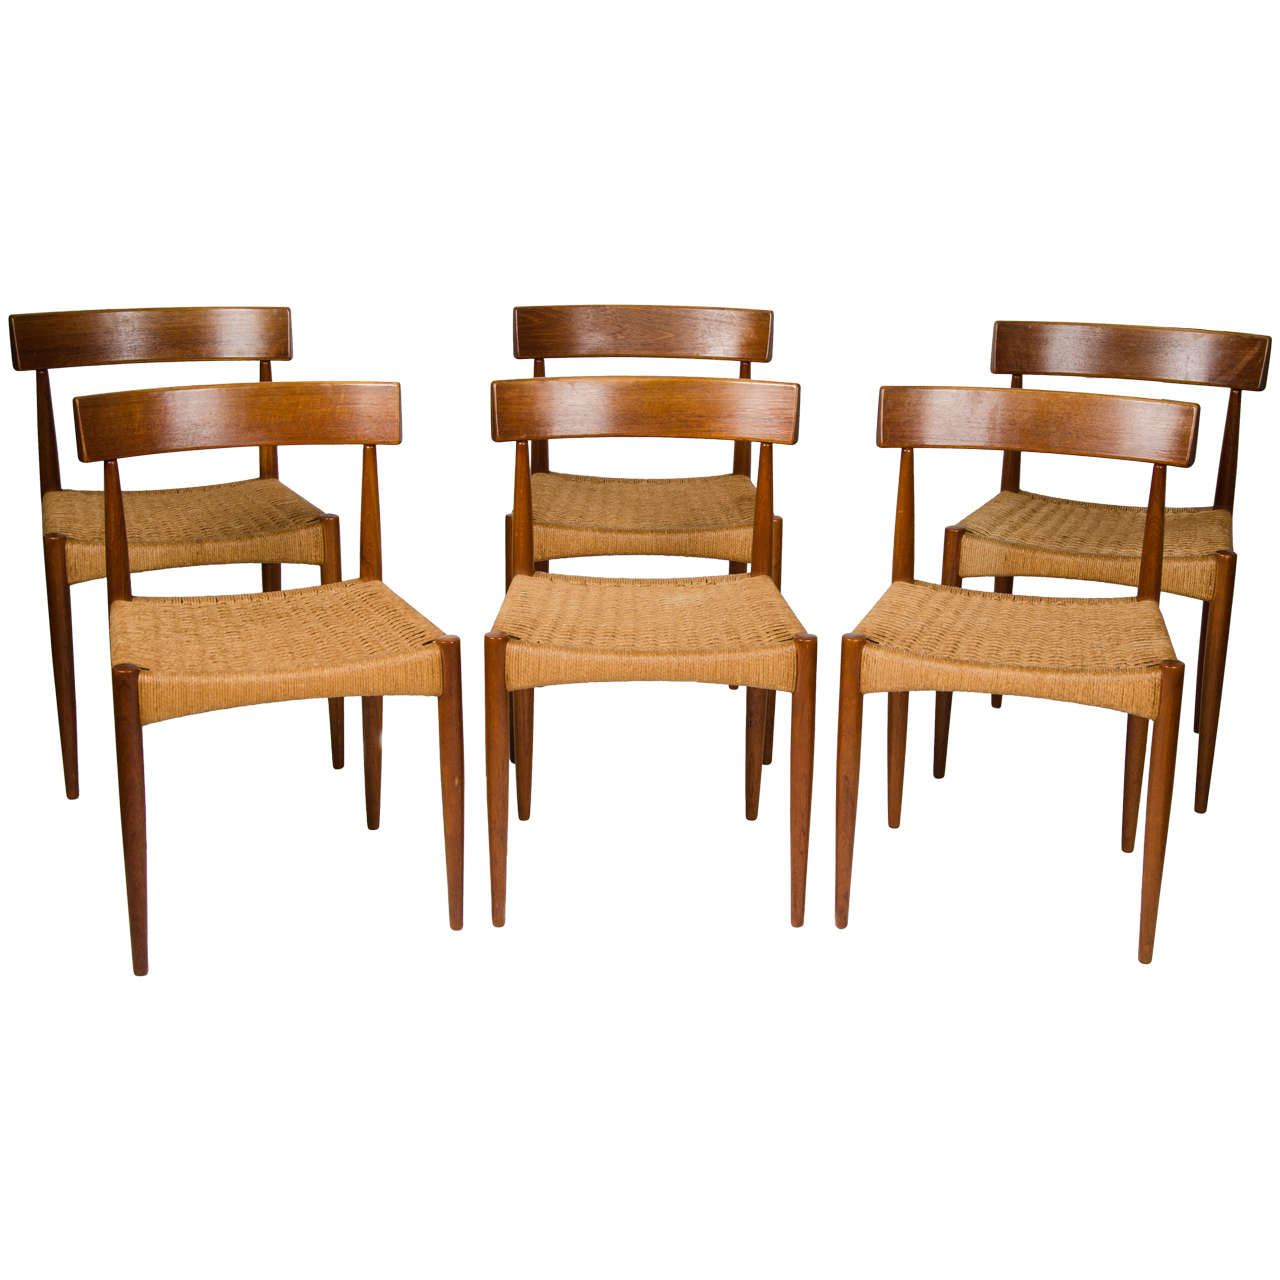 Set of six danish dining chairs at 1stdibs for Dining room chairs set of 6